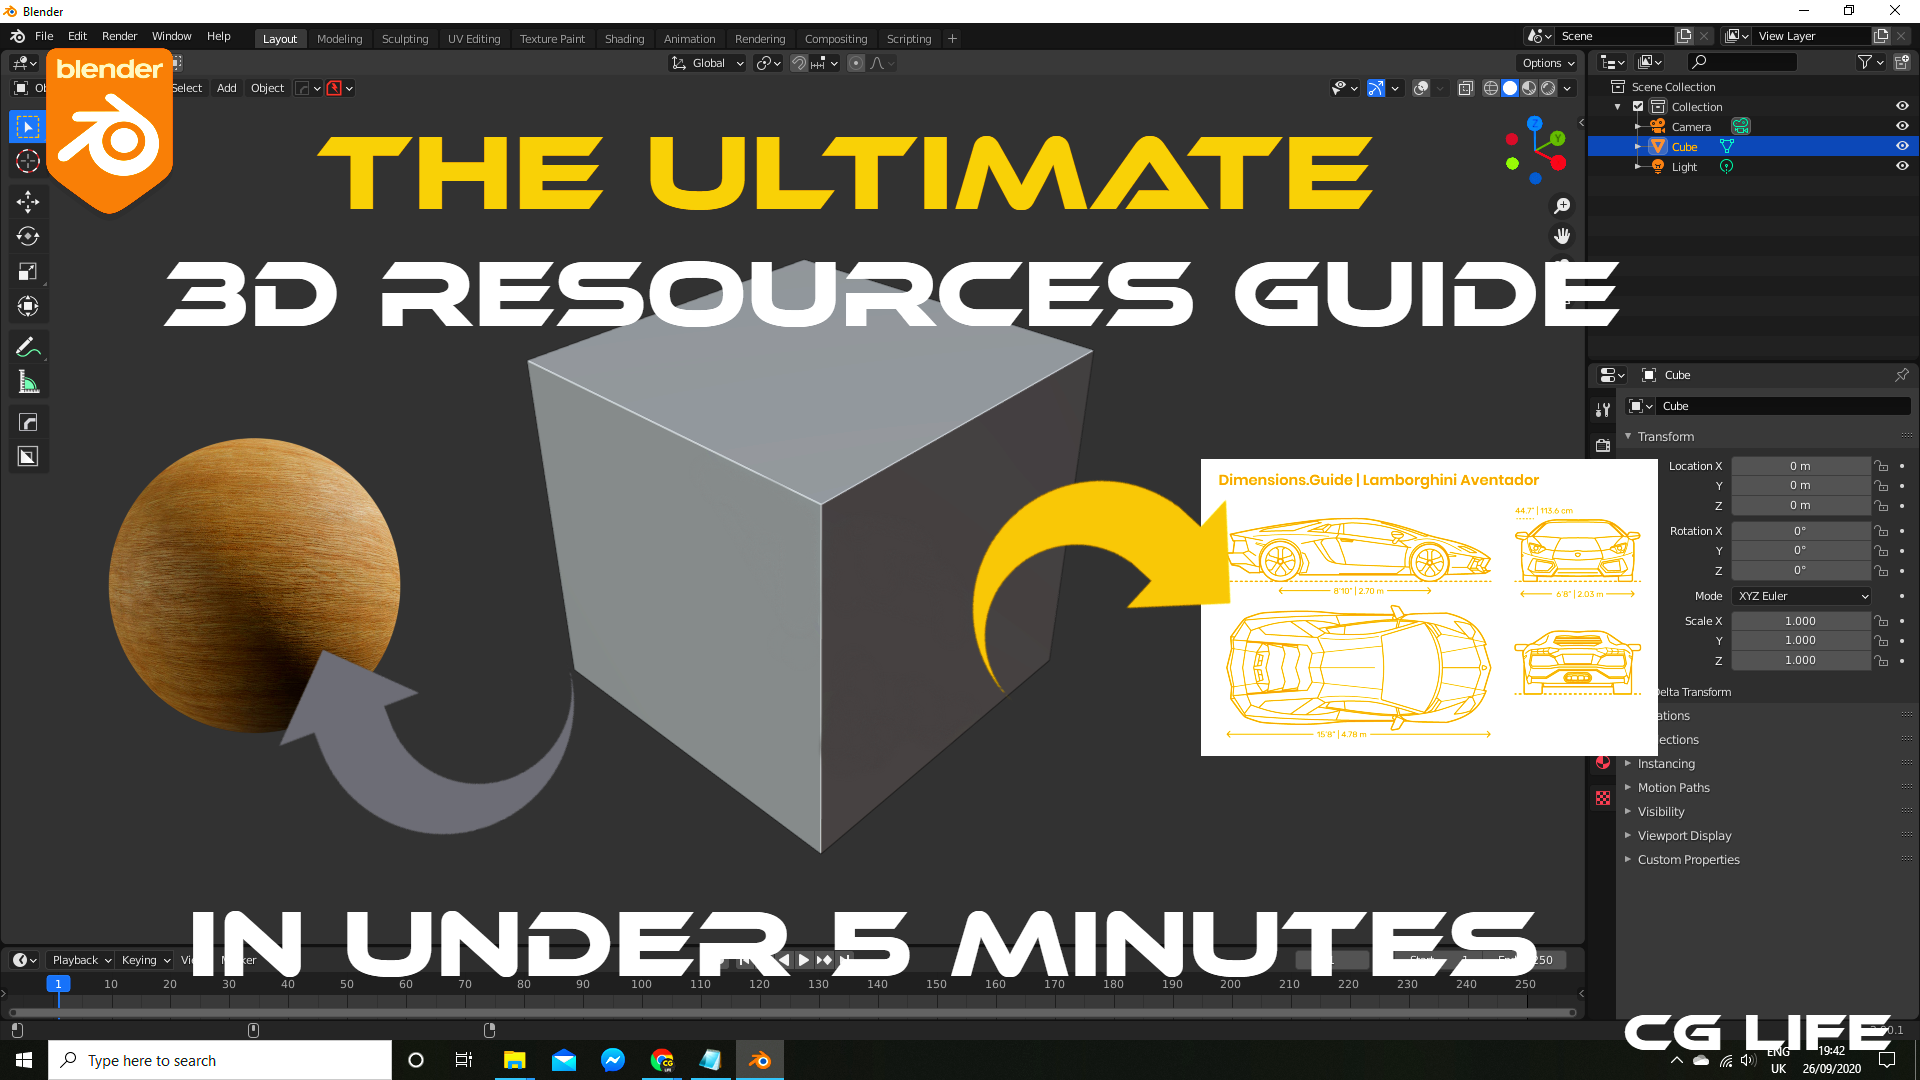 Ultimate 3d Resources Guide in under 5 minutes